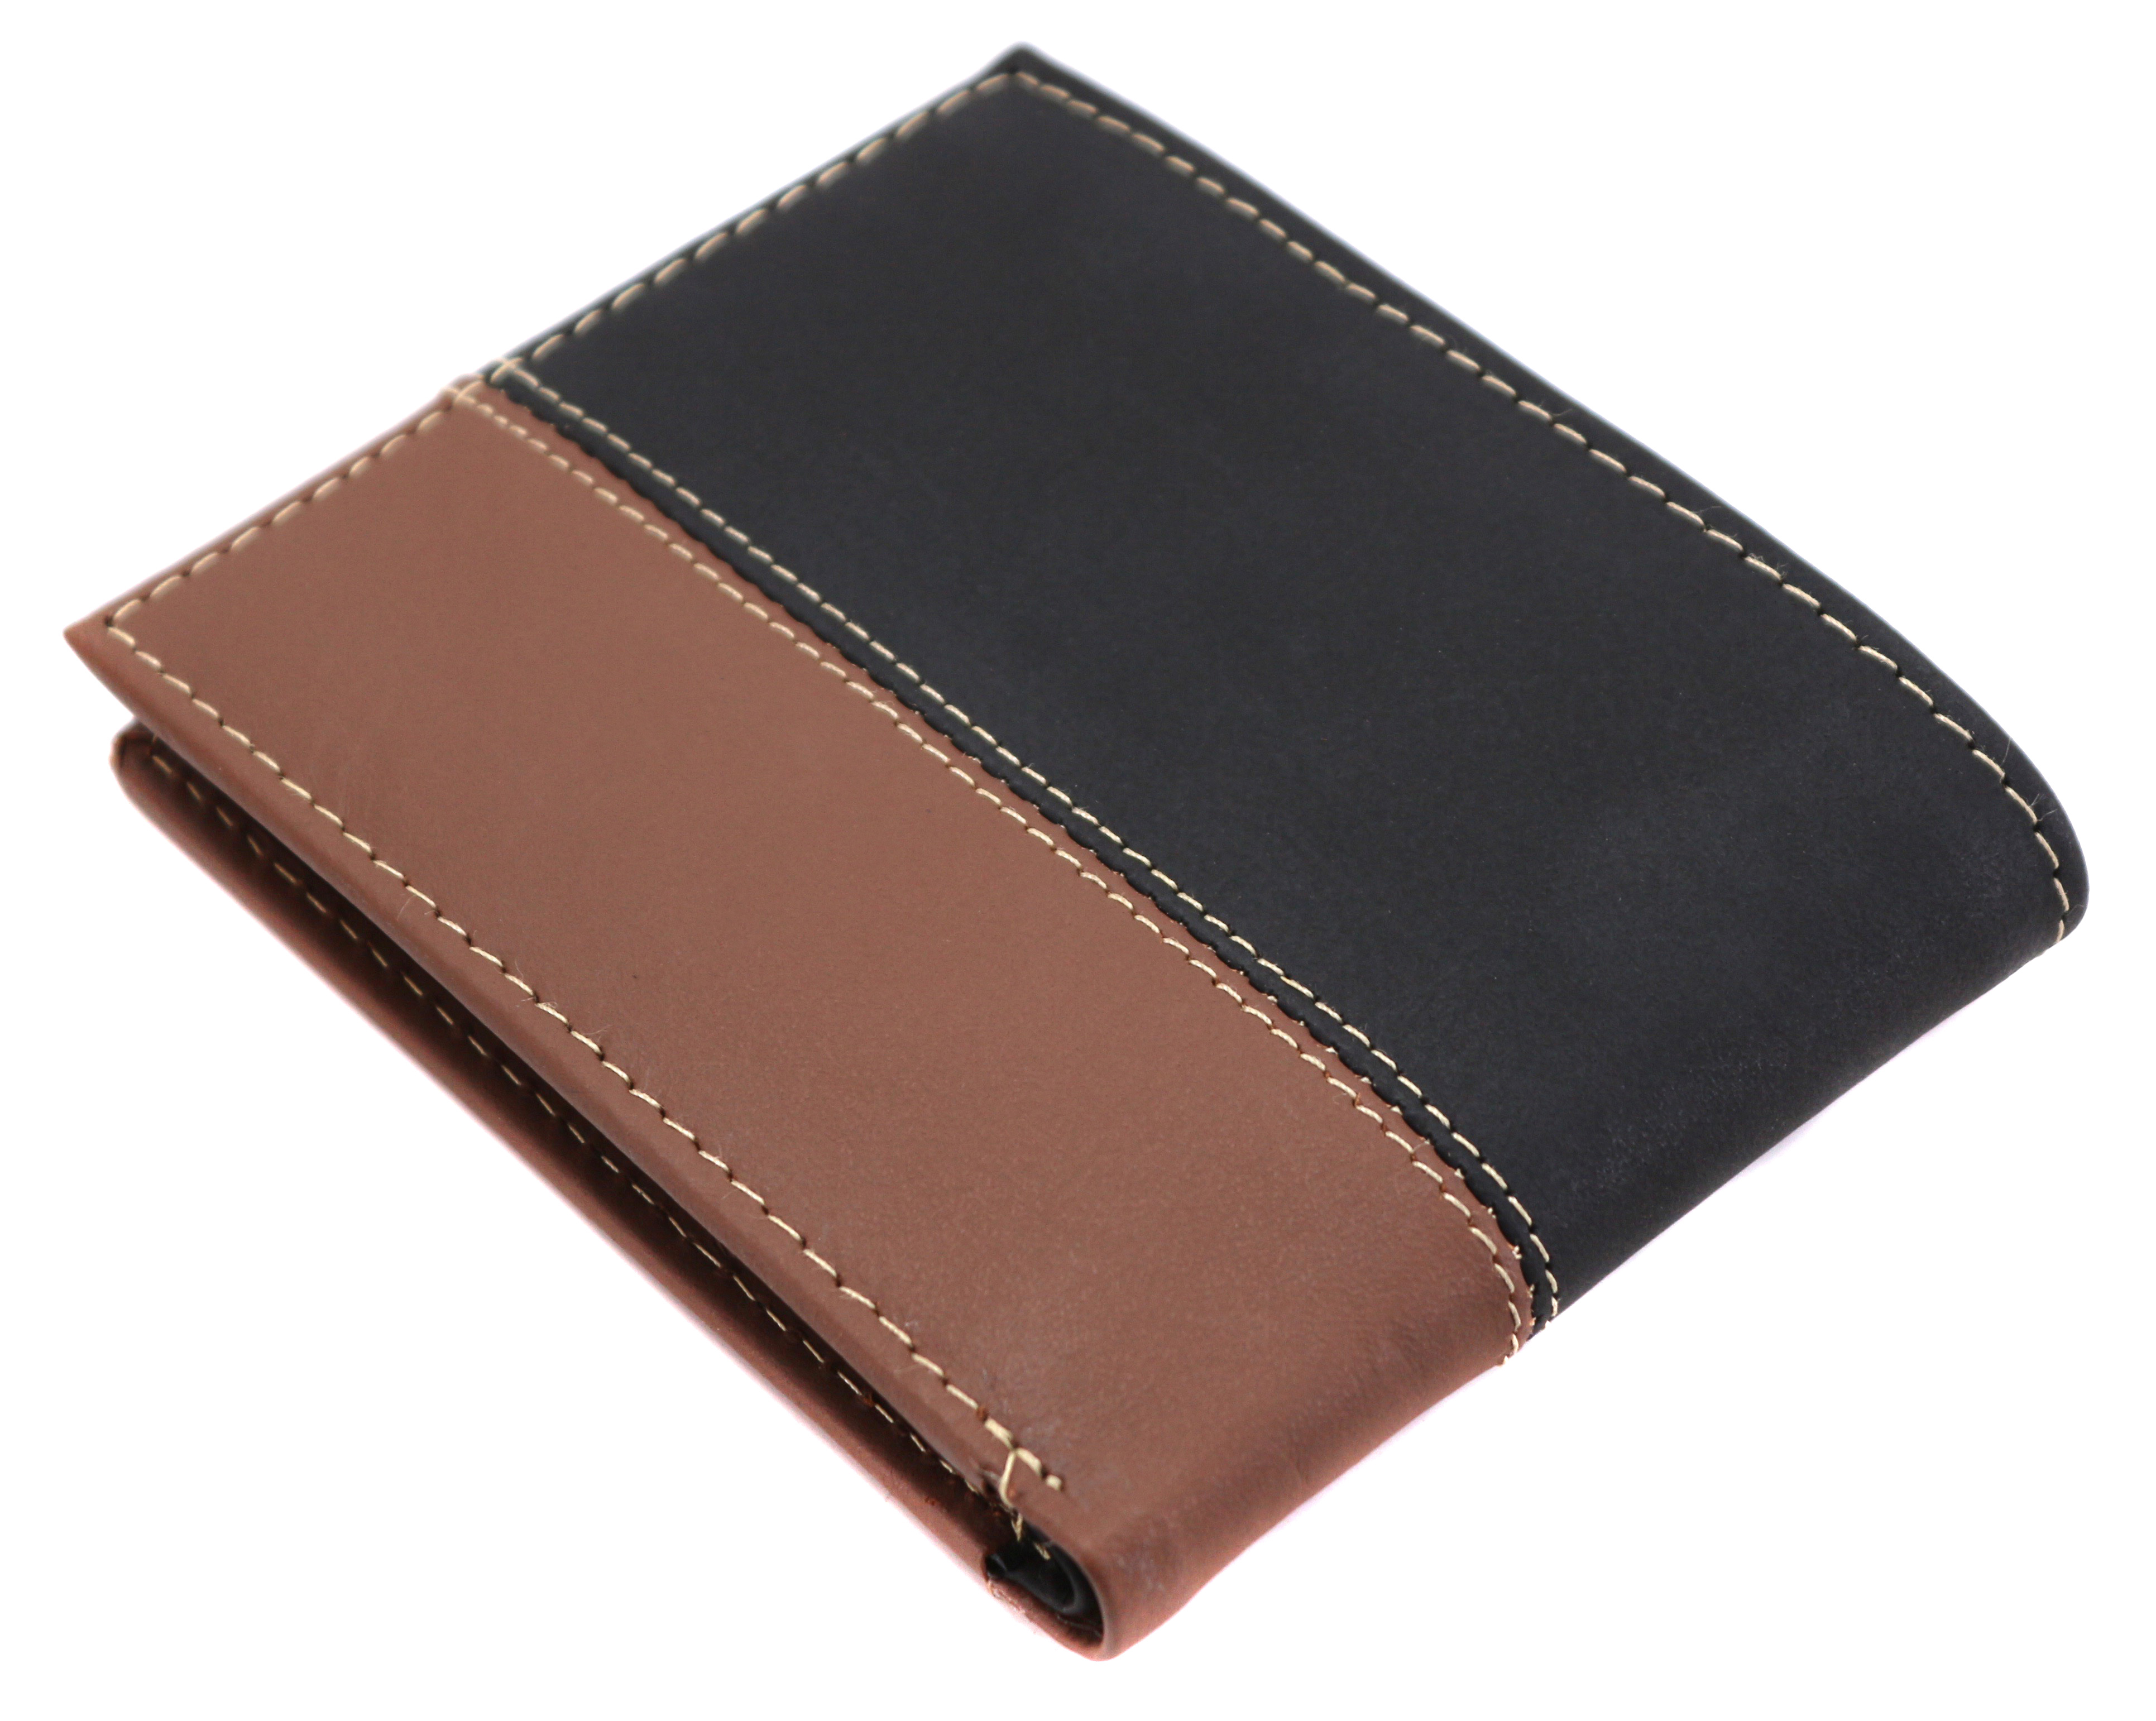 Timberland-Men-039-s-Genuine-Two-Tone-Leather-Credit-Card-Billfold-Commuter-Wallet thumbnail 10